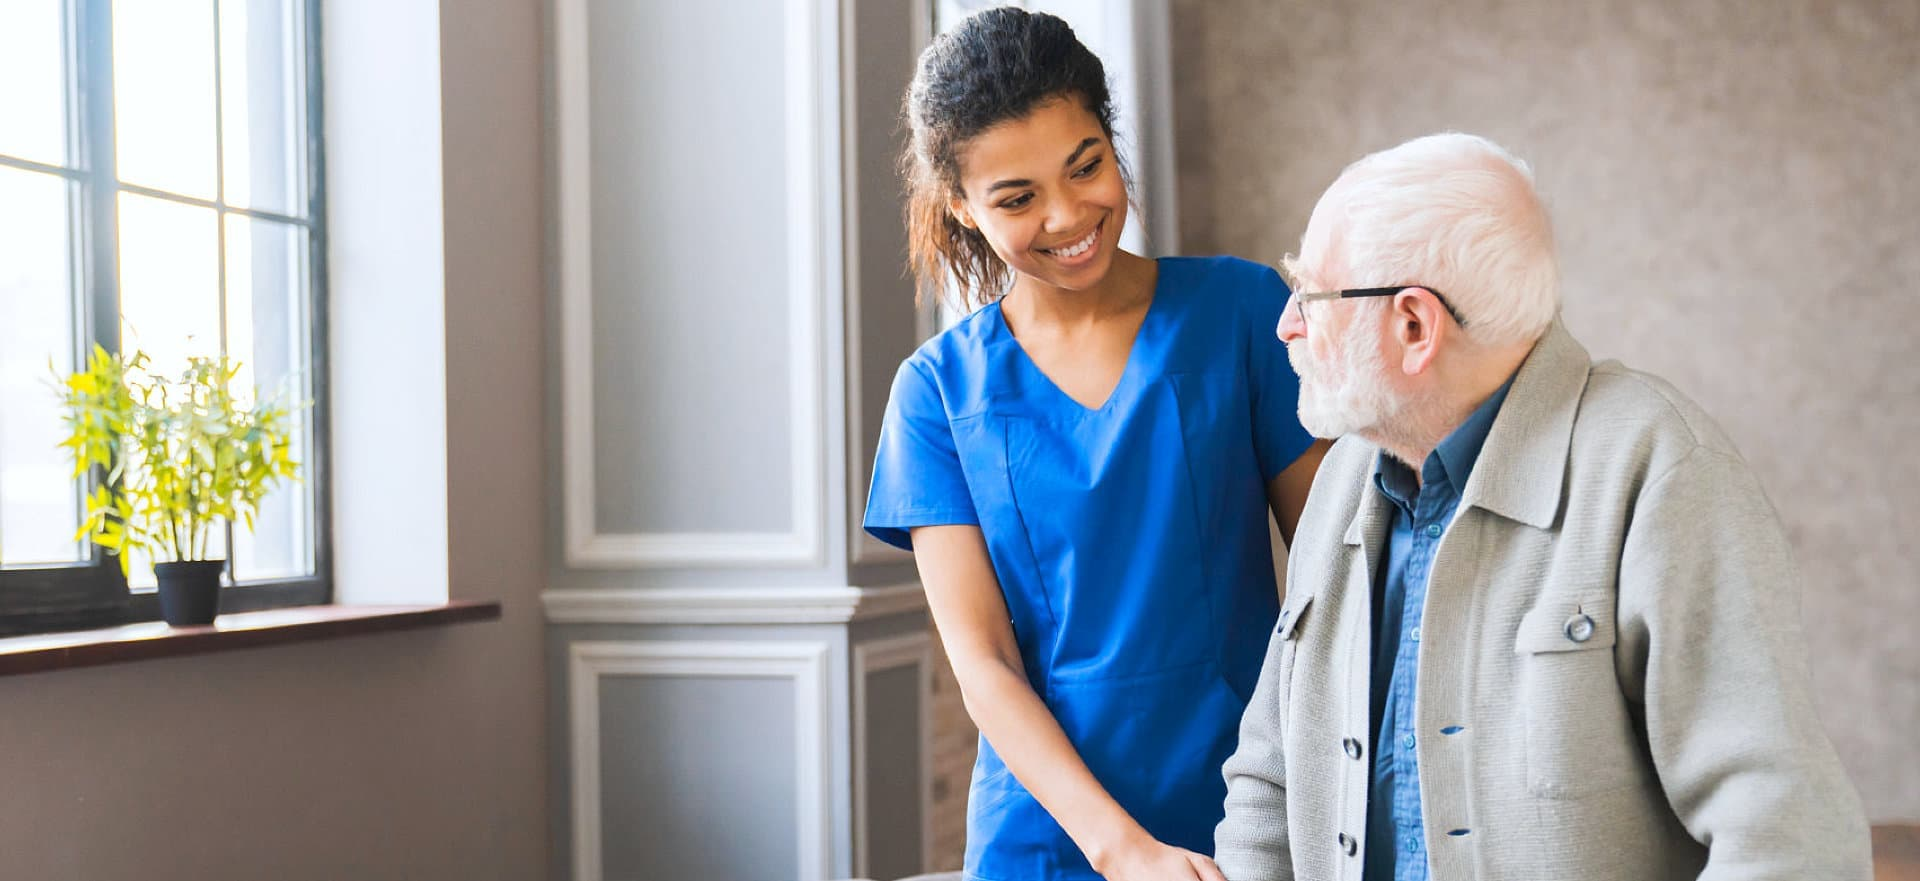 a nurse smiling at an elderly with glasses